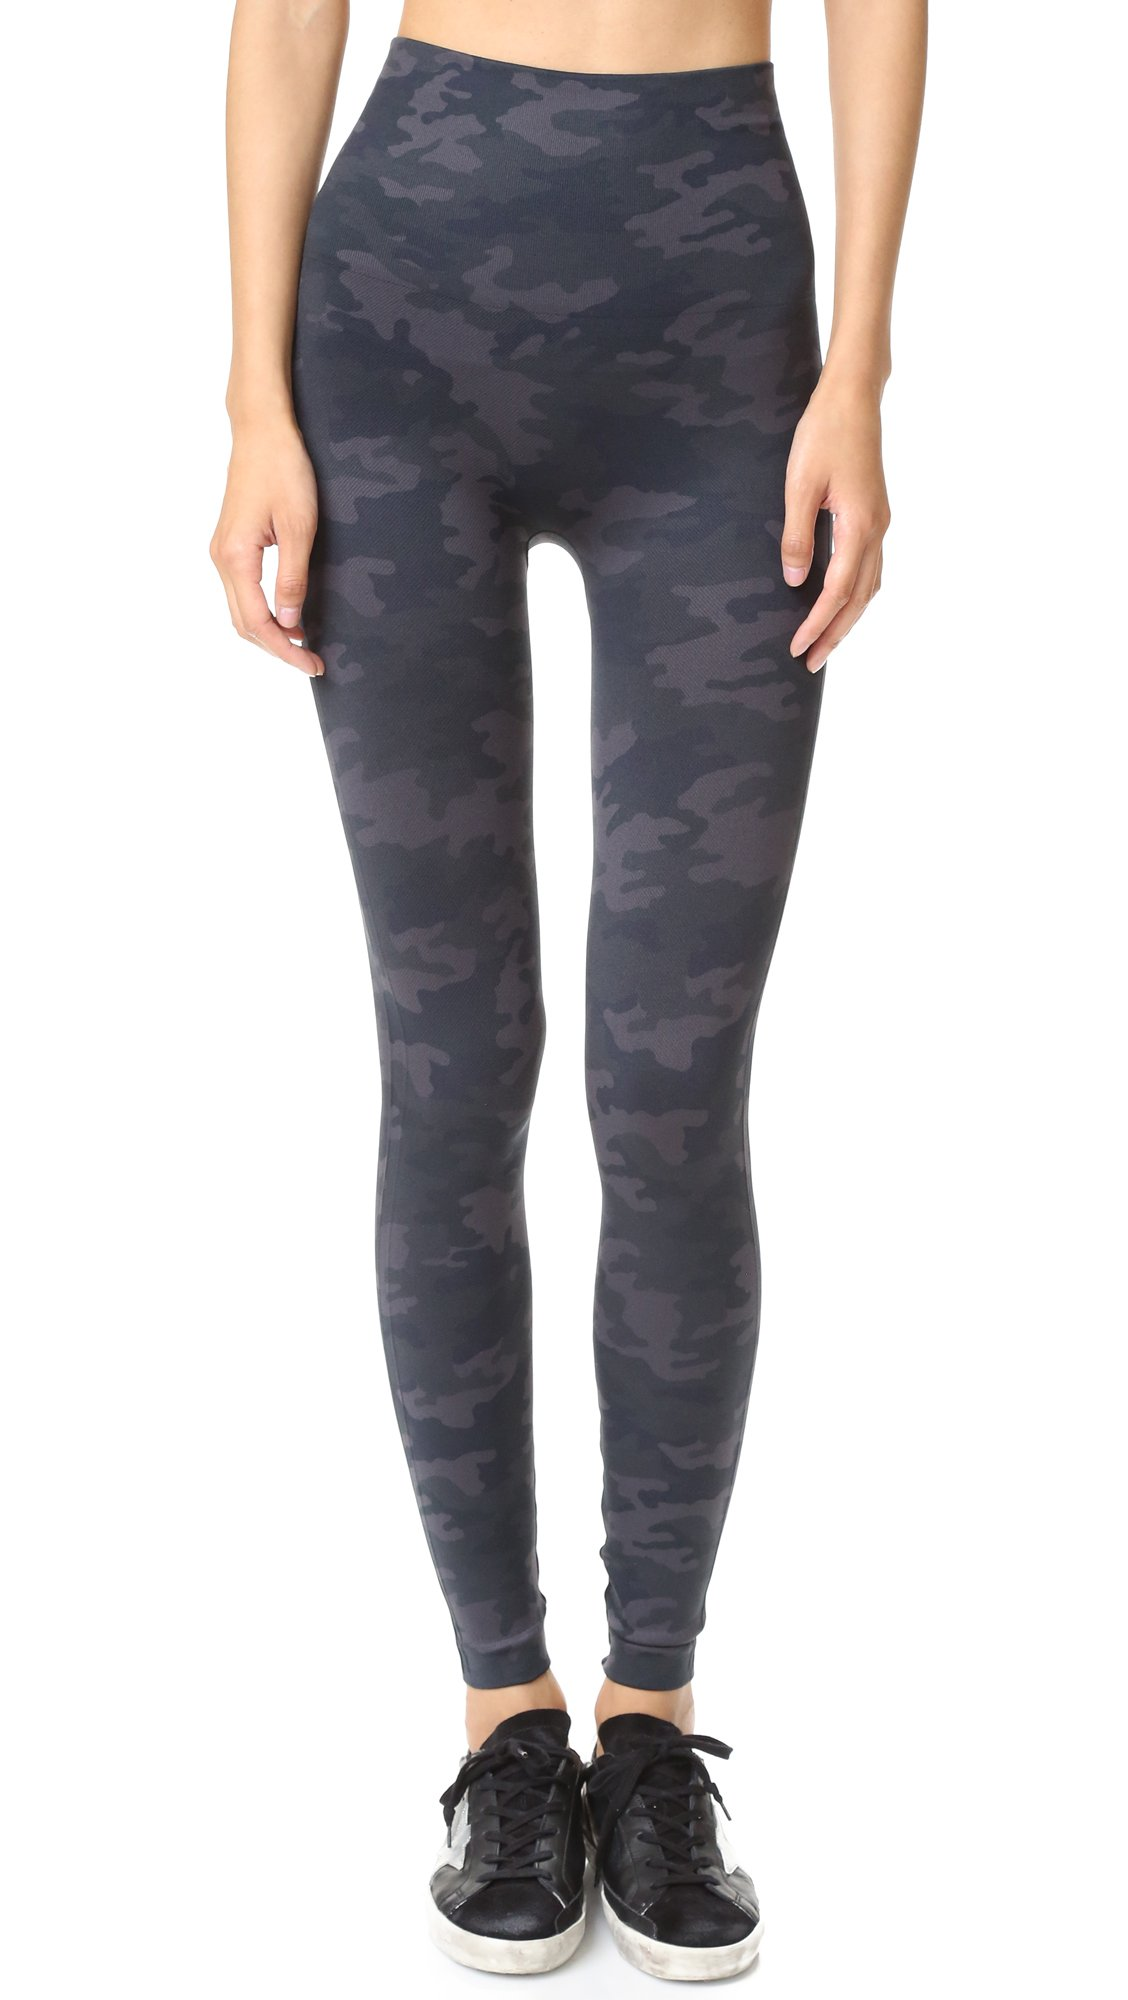 Spanx Look at me Now Seamless Leggings, Black Camo, X-Small